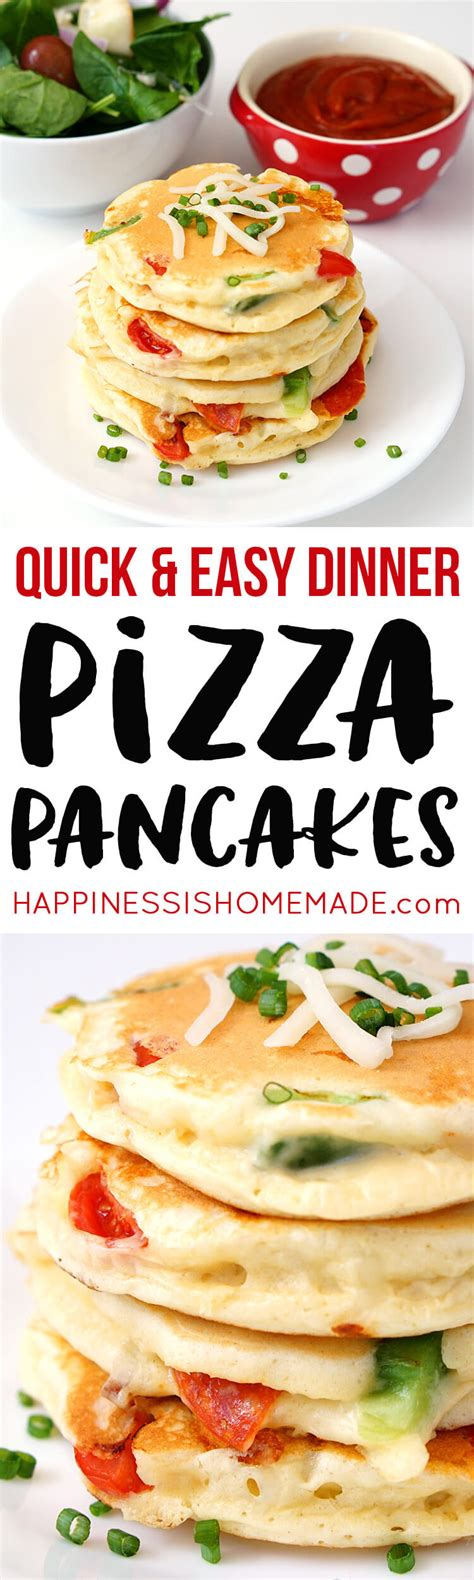 Pizza Pancakes  Quick & Easy Dinner Idea  Happiness Is Homemade